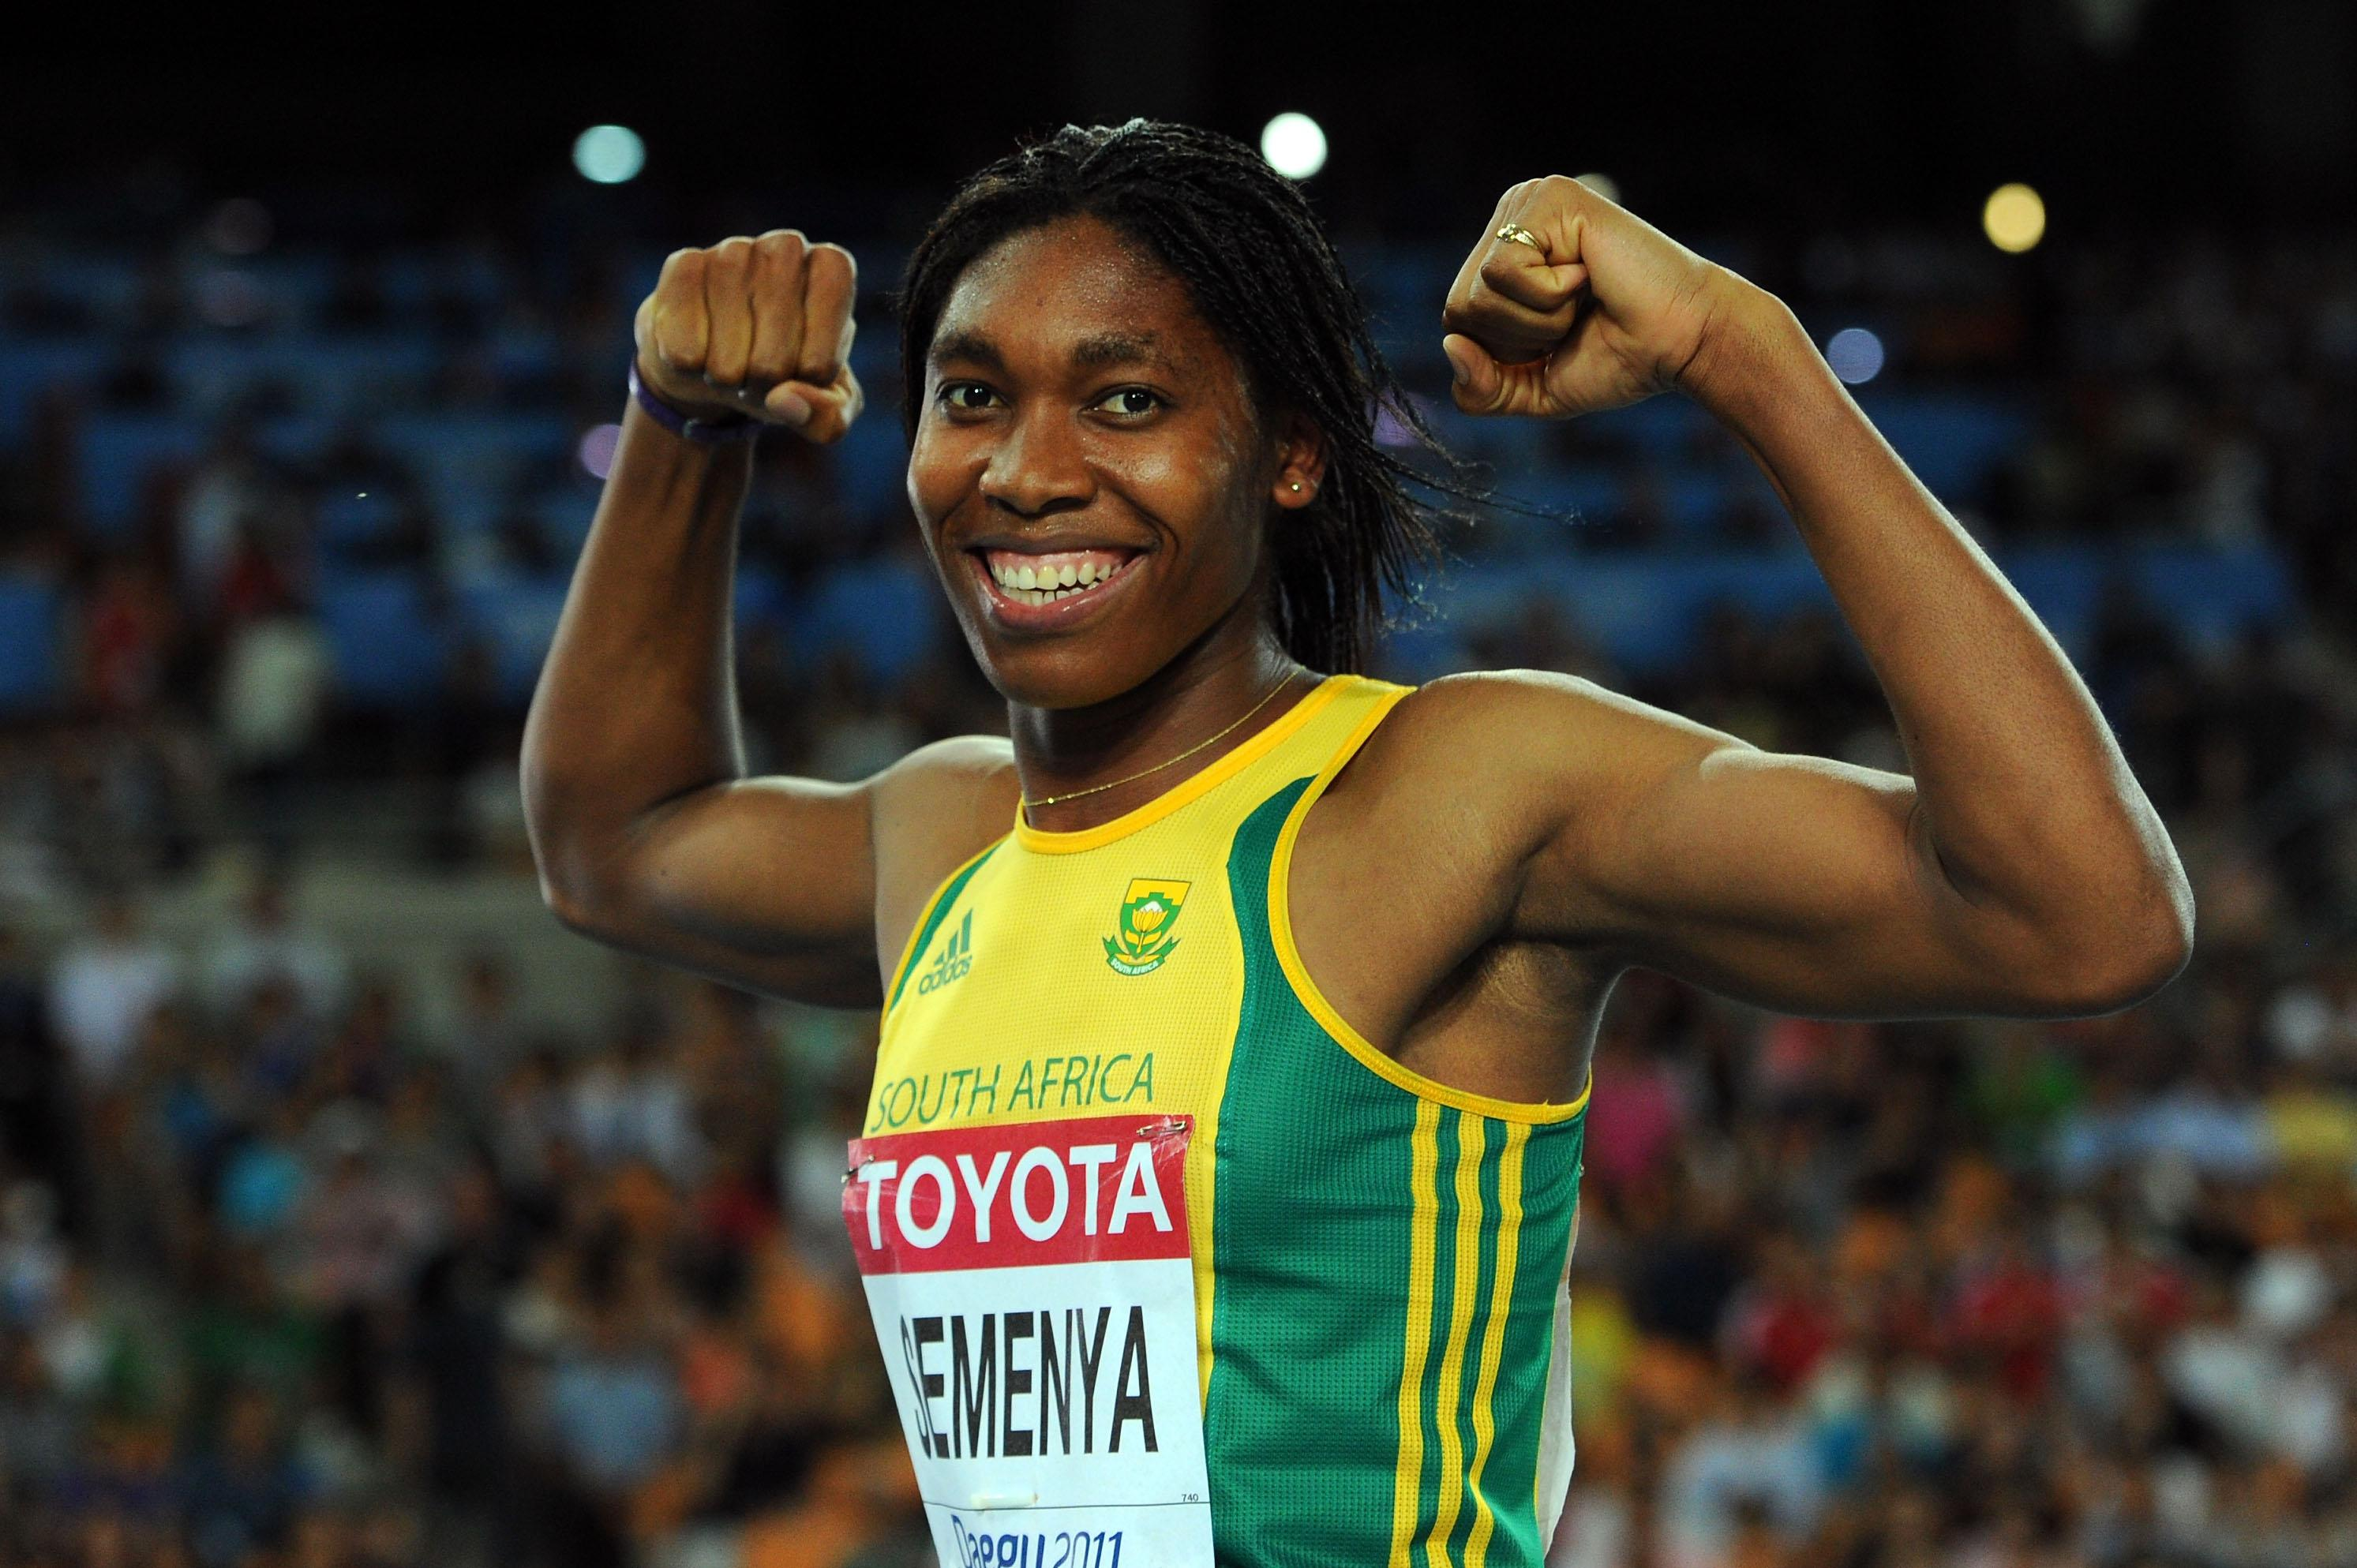 Semenya has been forced to endure the humiliation of gender testing after making such a huge impact in athletics